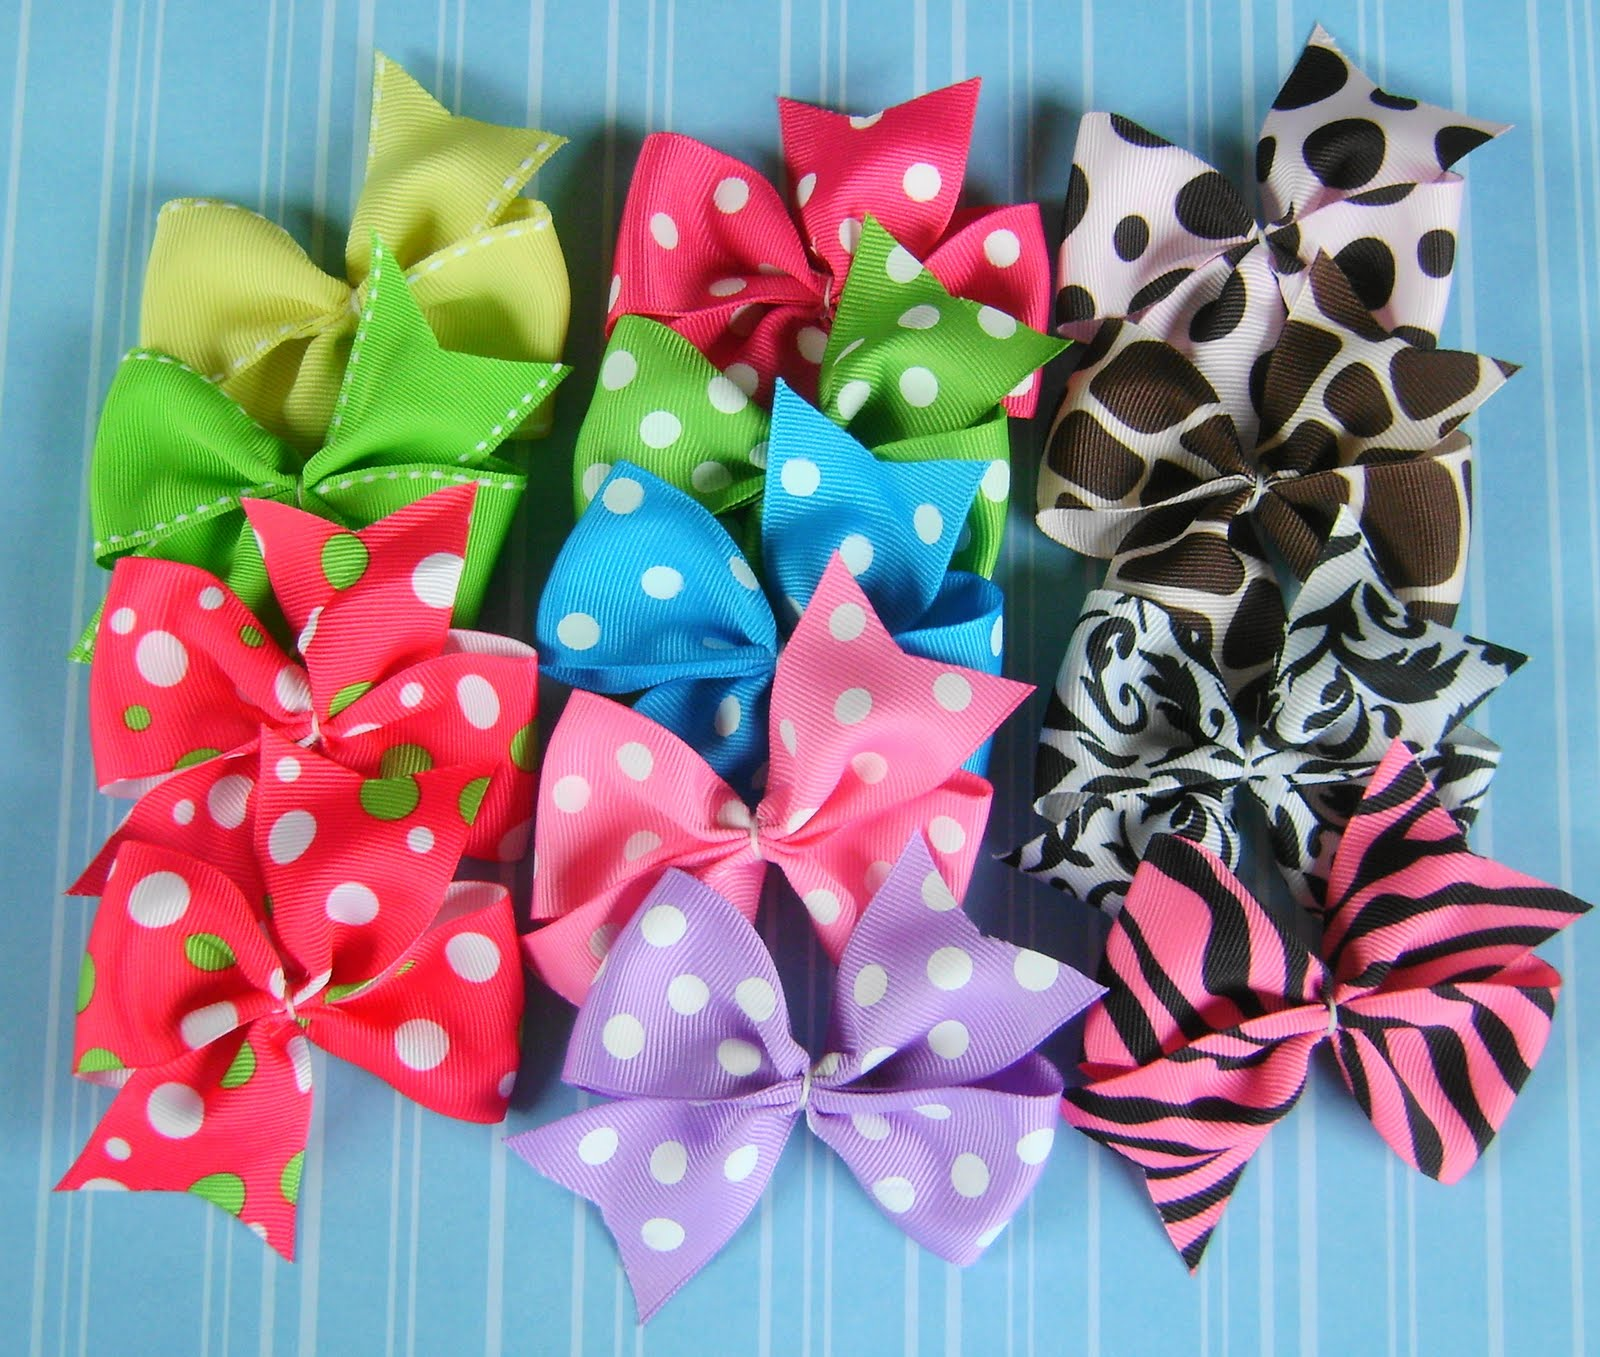 Cheap Hairbows For Babies Made From Grosgrain Ribbon Bow Hair, Wholesale Prices. This category offers our darling baby hairbows as well as our everyday boutiqe bow. The wholesale baby hair bows are small, dainty and just plain cute.